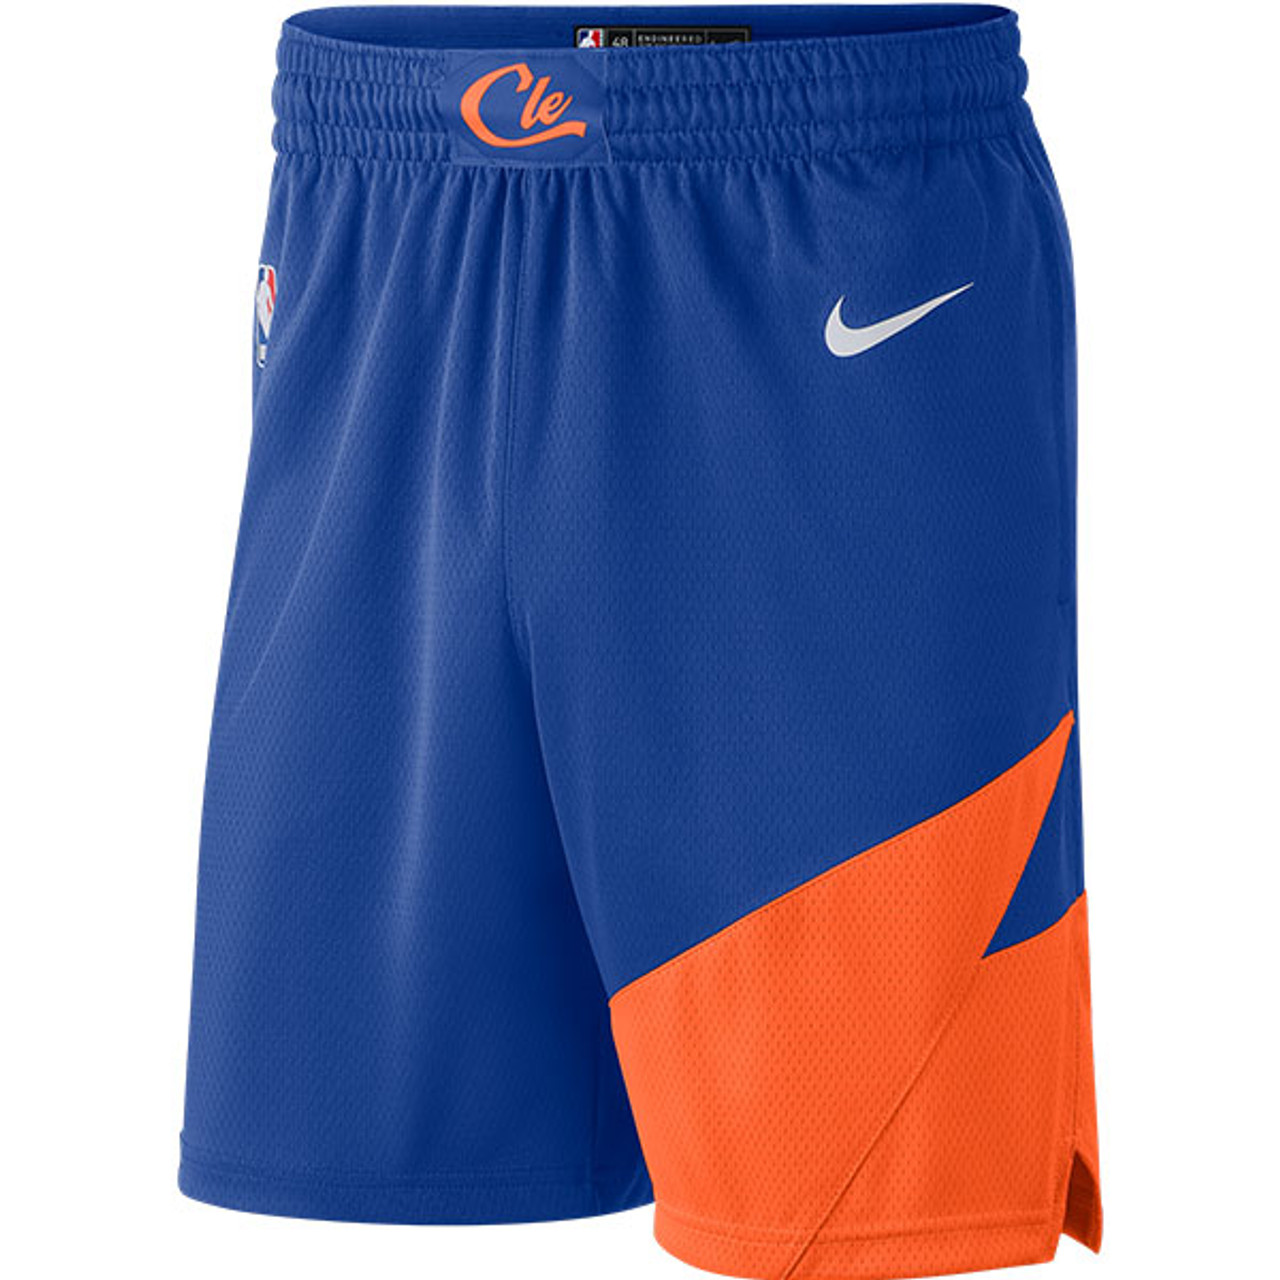 quality design e95f5 a6484 Cleveland City Edition Swingman Shorts